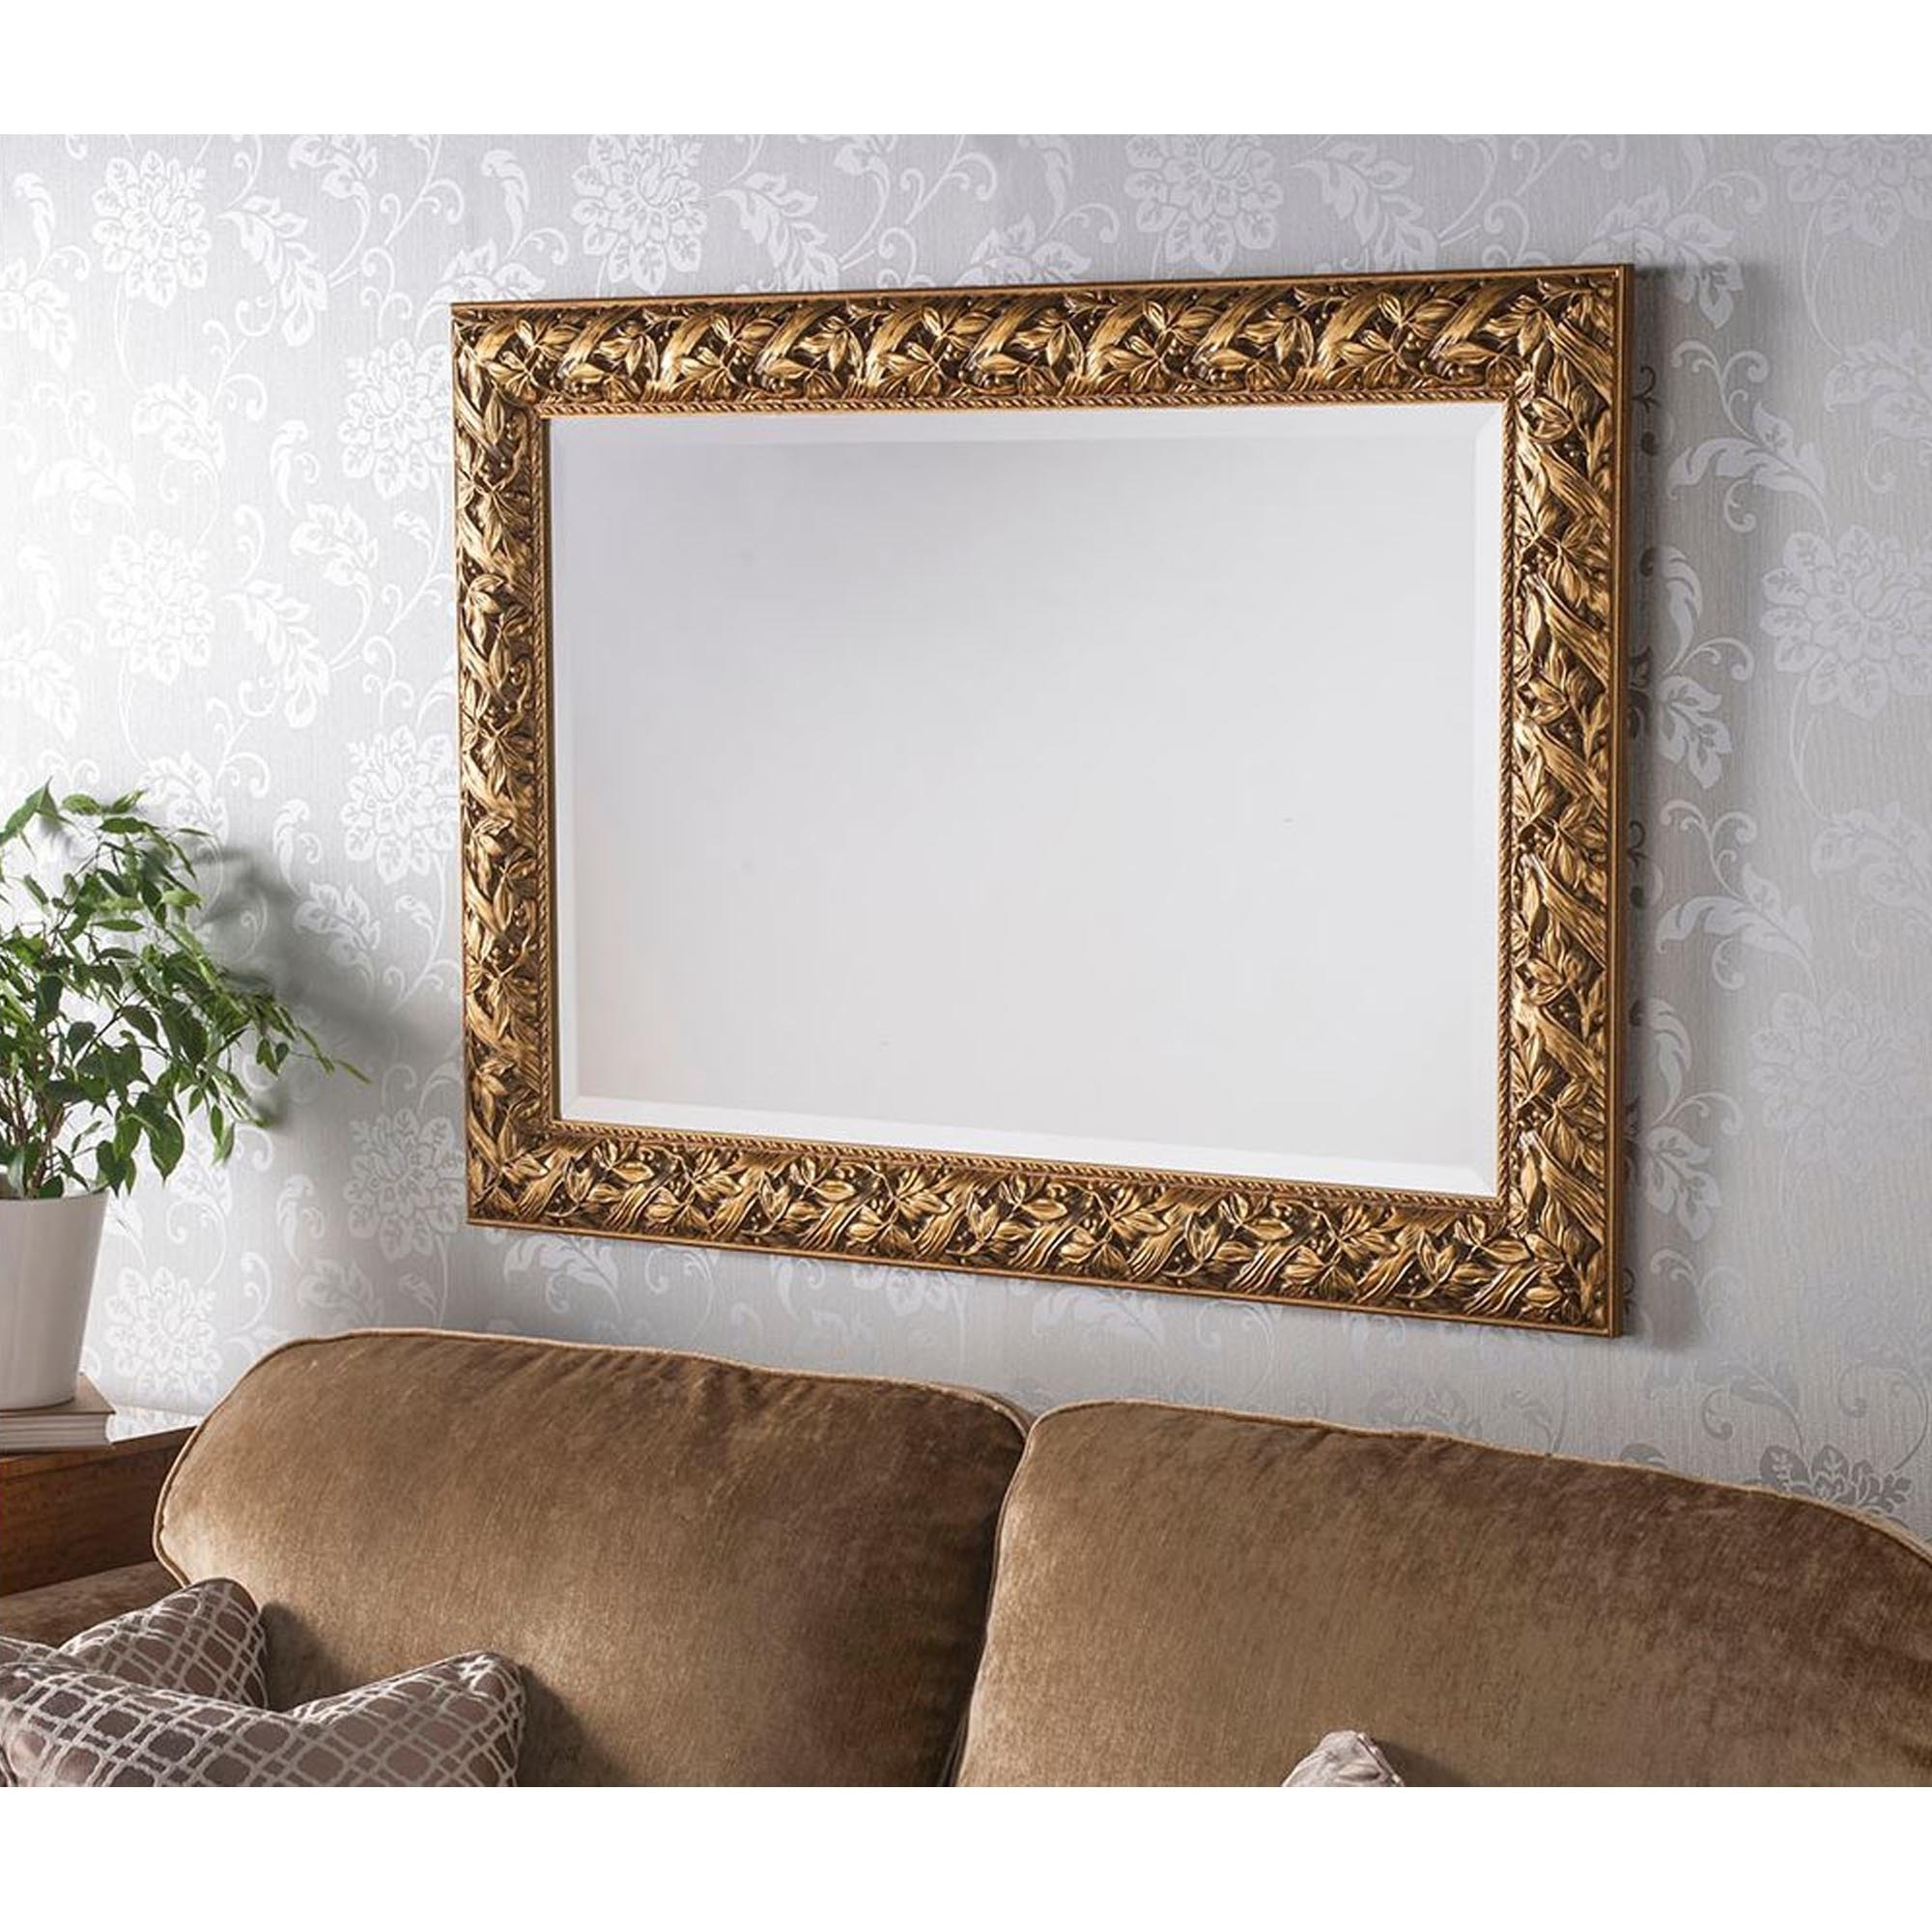 Sherwood Decorative Gold Wall Mirror For Most Current Beautiful Wall Mirrors (View 3 of 20)